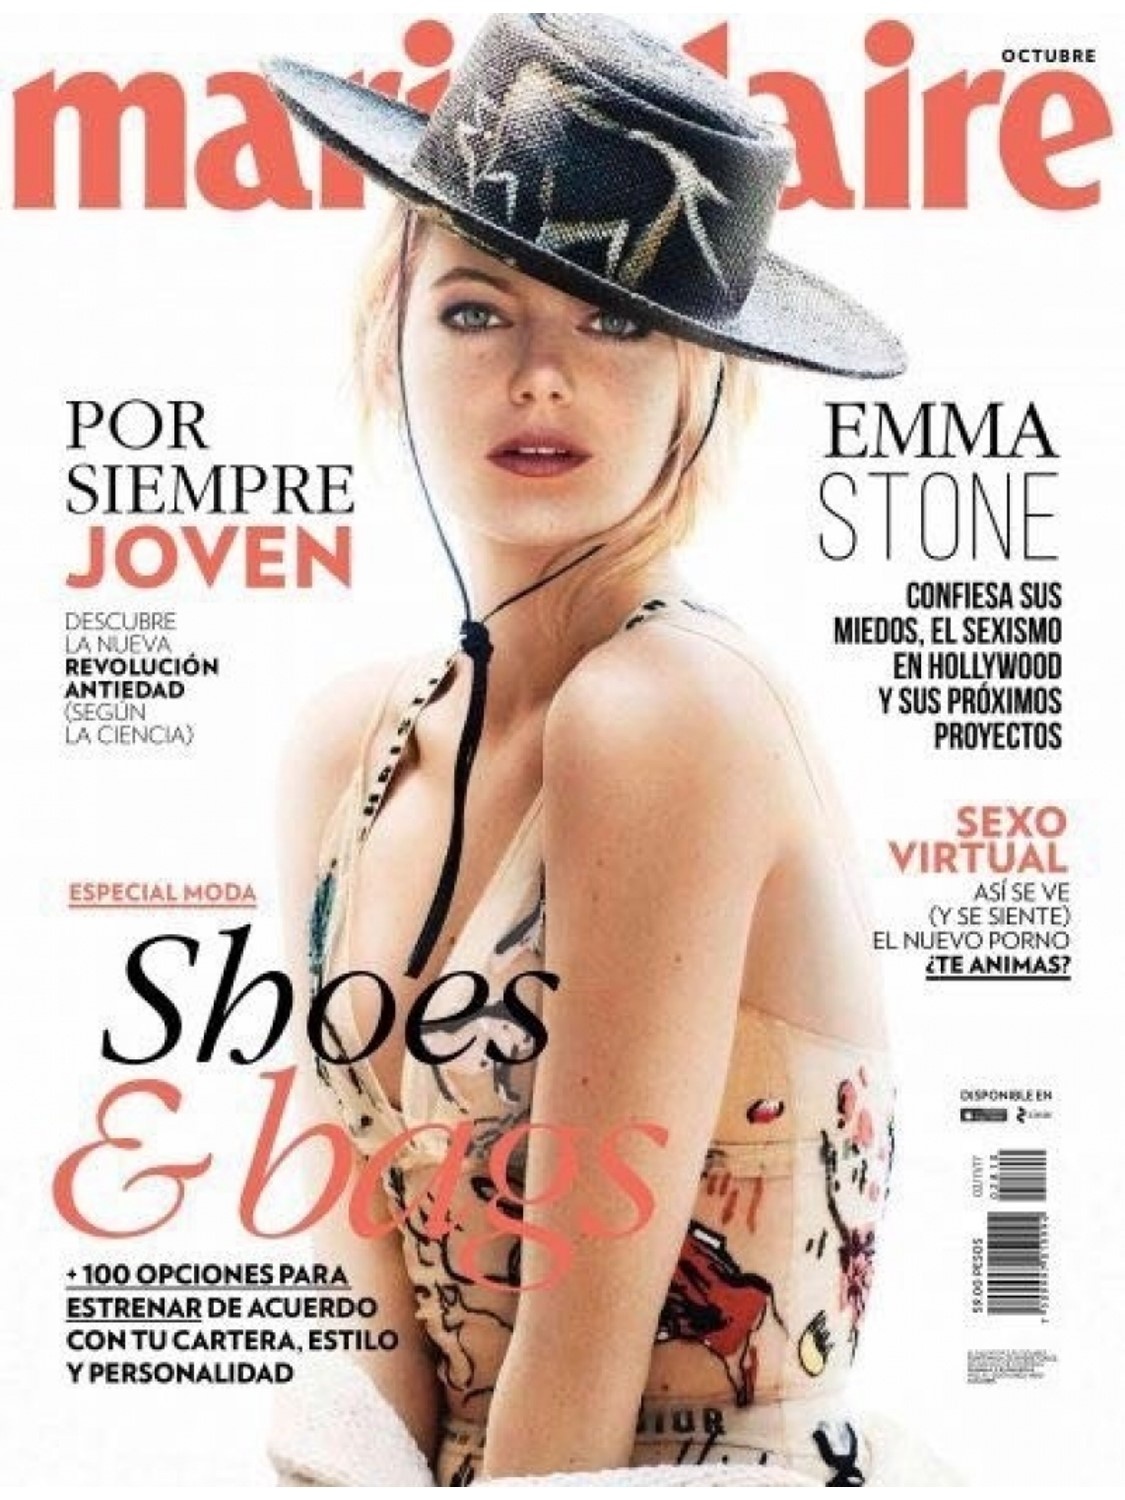 Marie Claire - Oct 2017 - COVER.jpg